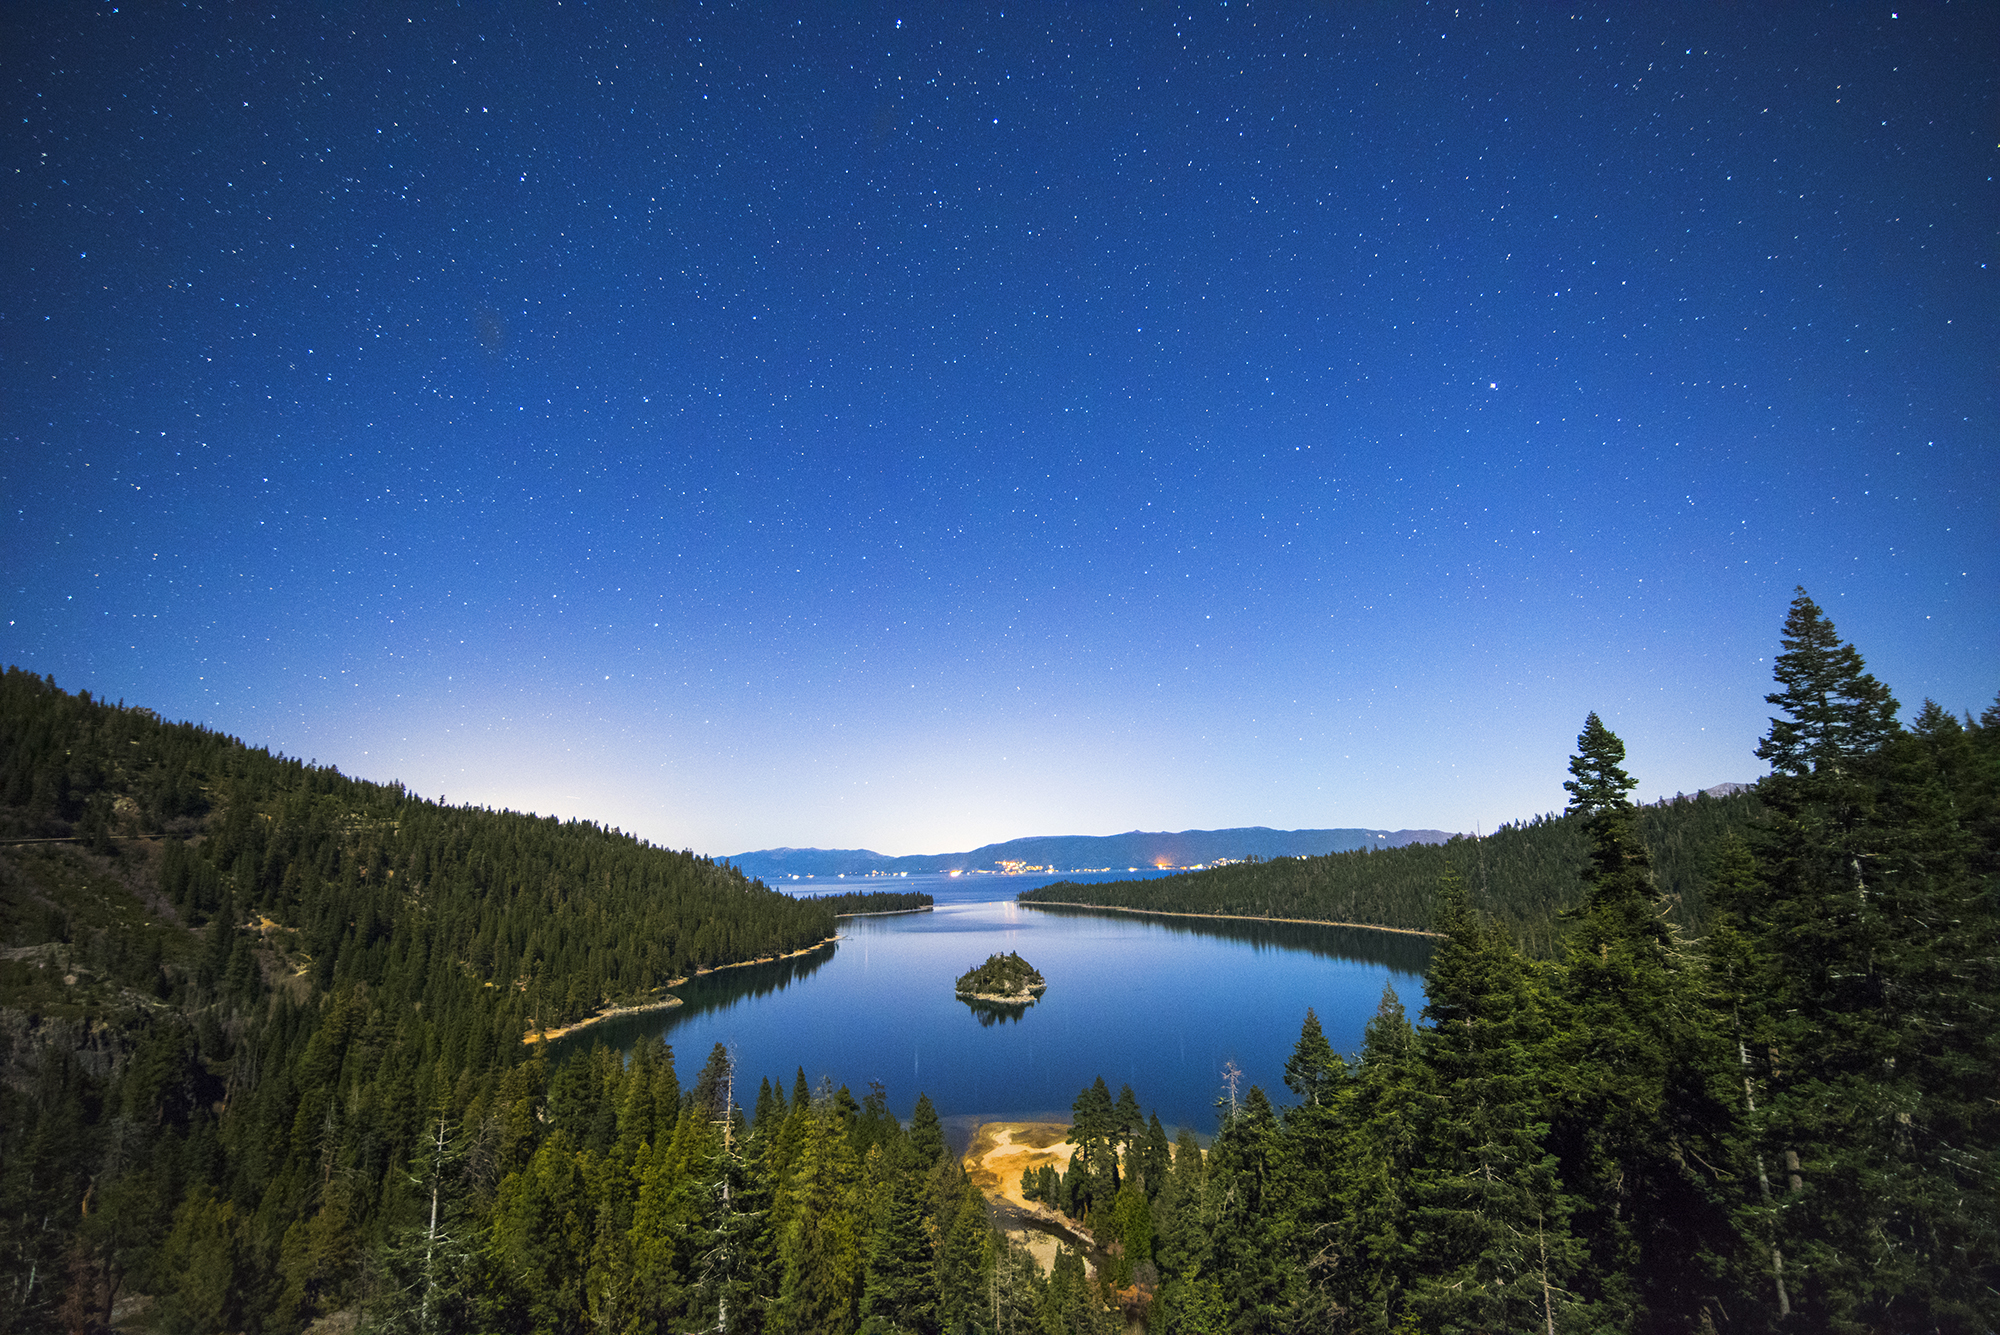 EMERALD BAY NIGHT WIDE SHOT NIKON D810